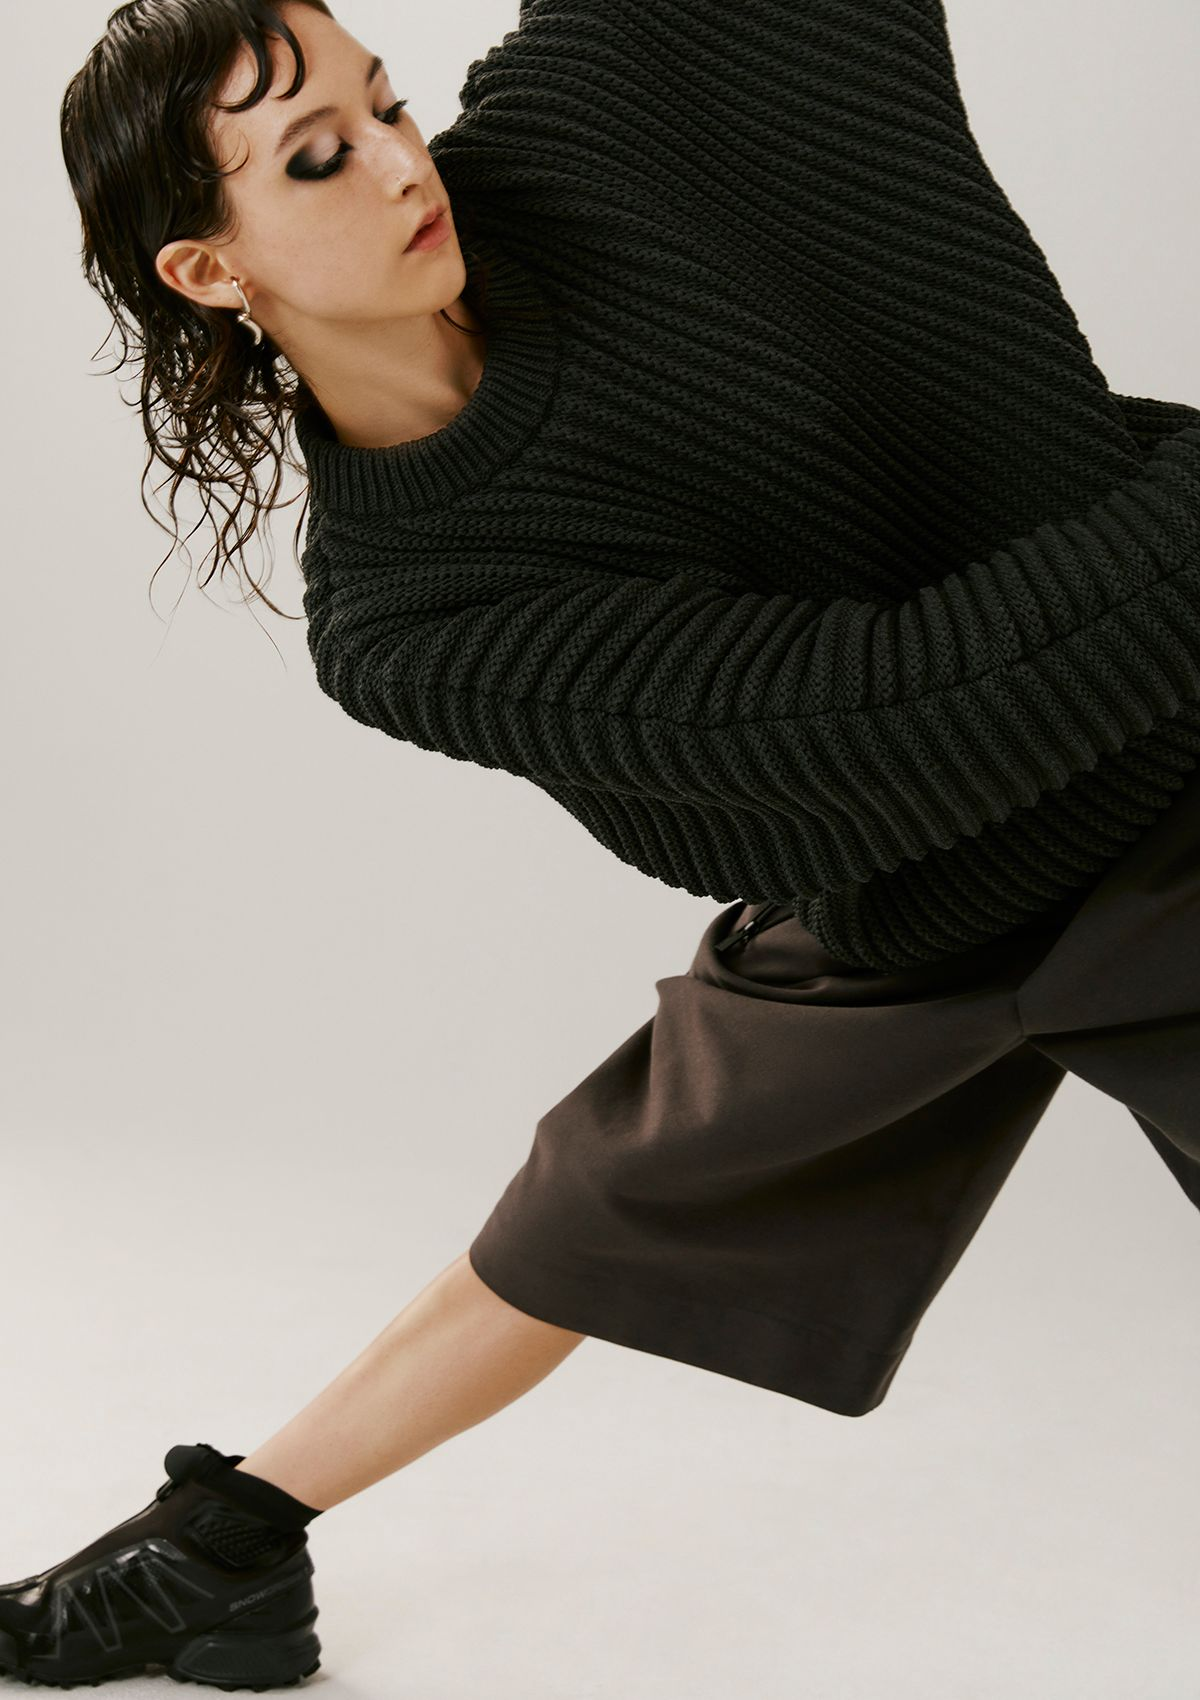 female model all dressed in black photographed by Kelly Jacob for Editorial for Contributor Magazine